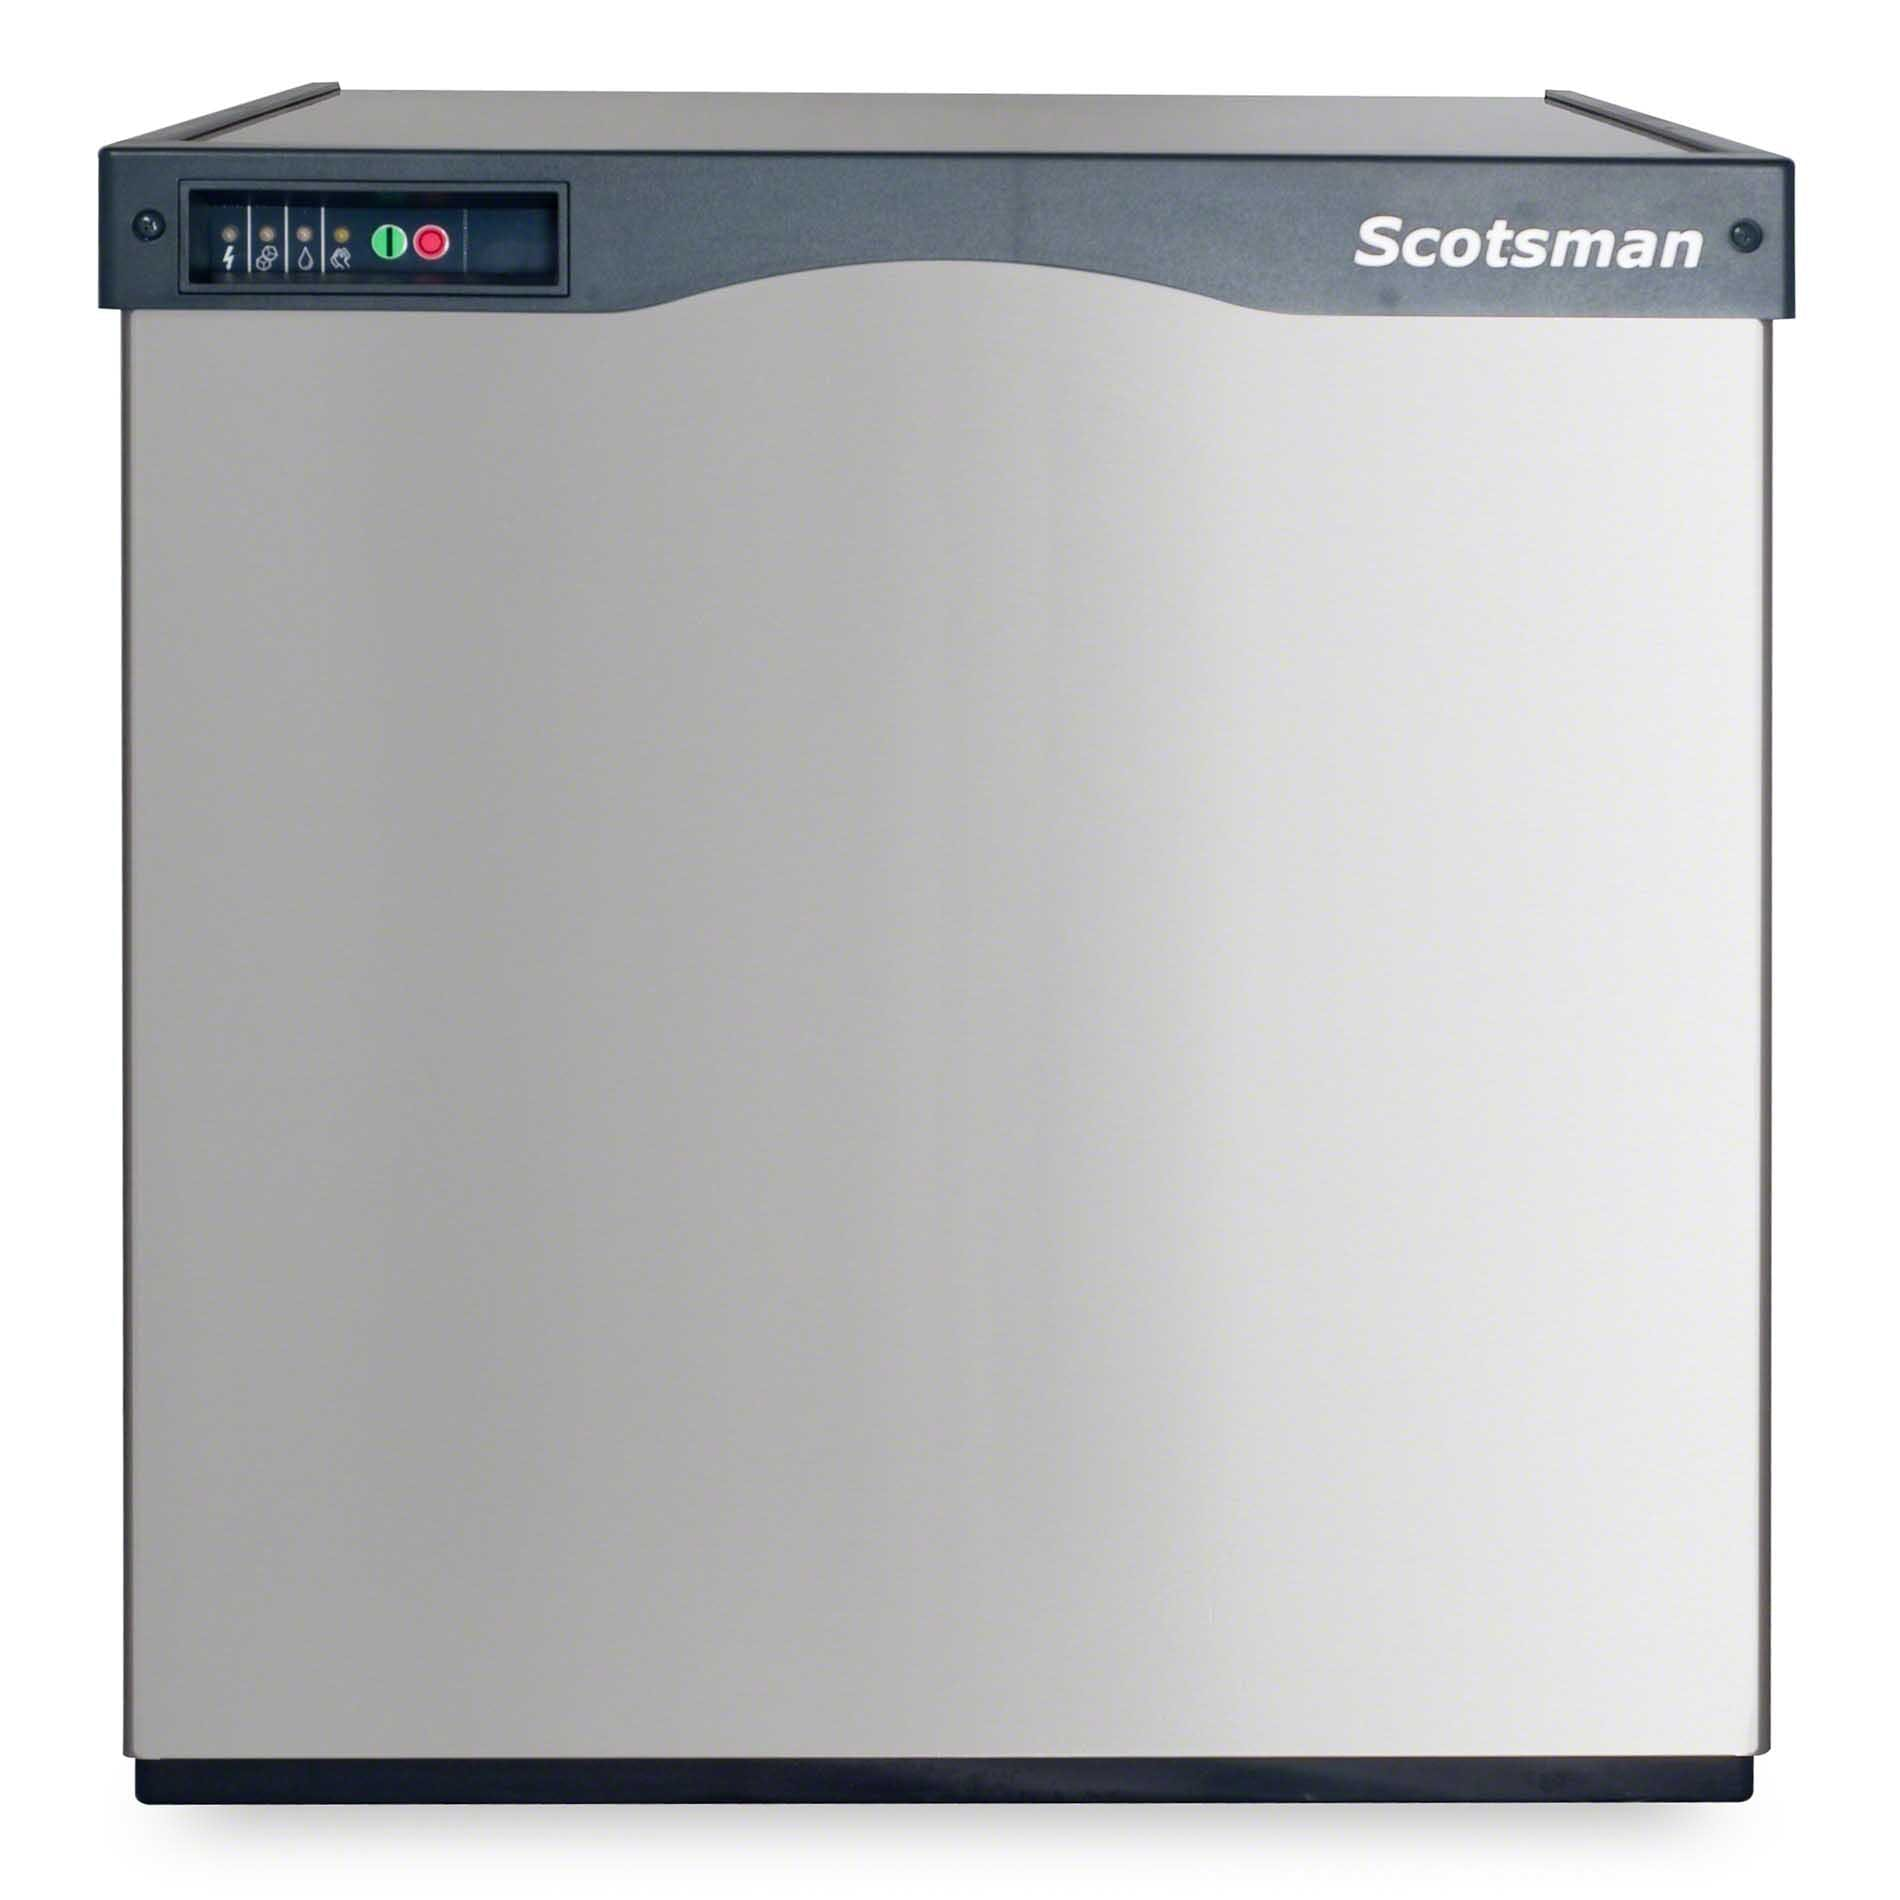 Scotsman - N0422W-1A 455 lb Nugget Ice Machine - Prodigy Series - sold by Food Service Warehouse